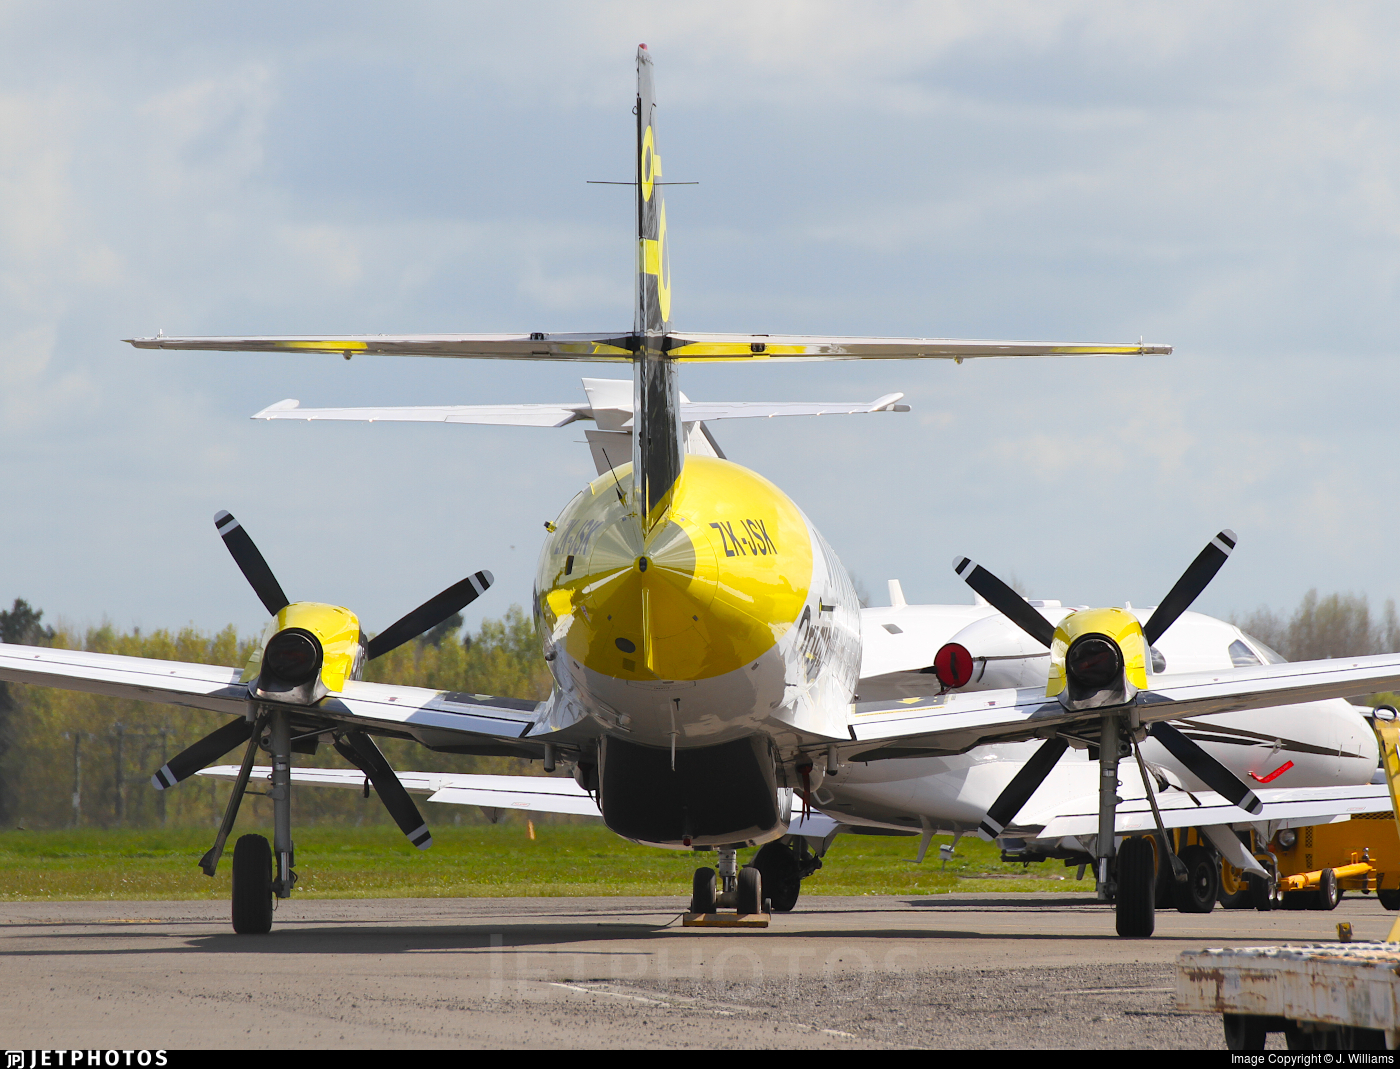 ZK-JSK - British Aerospace Jetstream 32EP - Originair